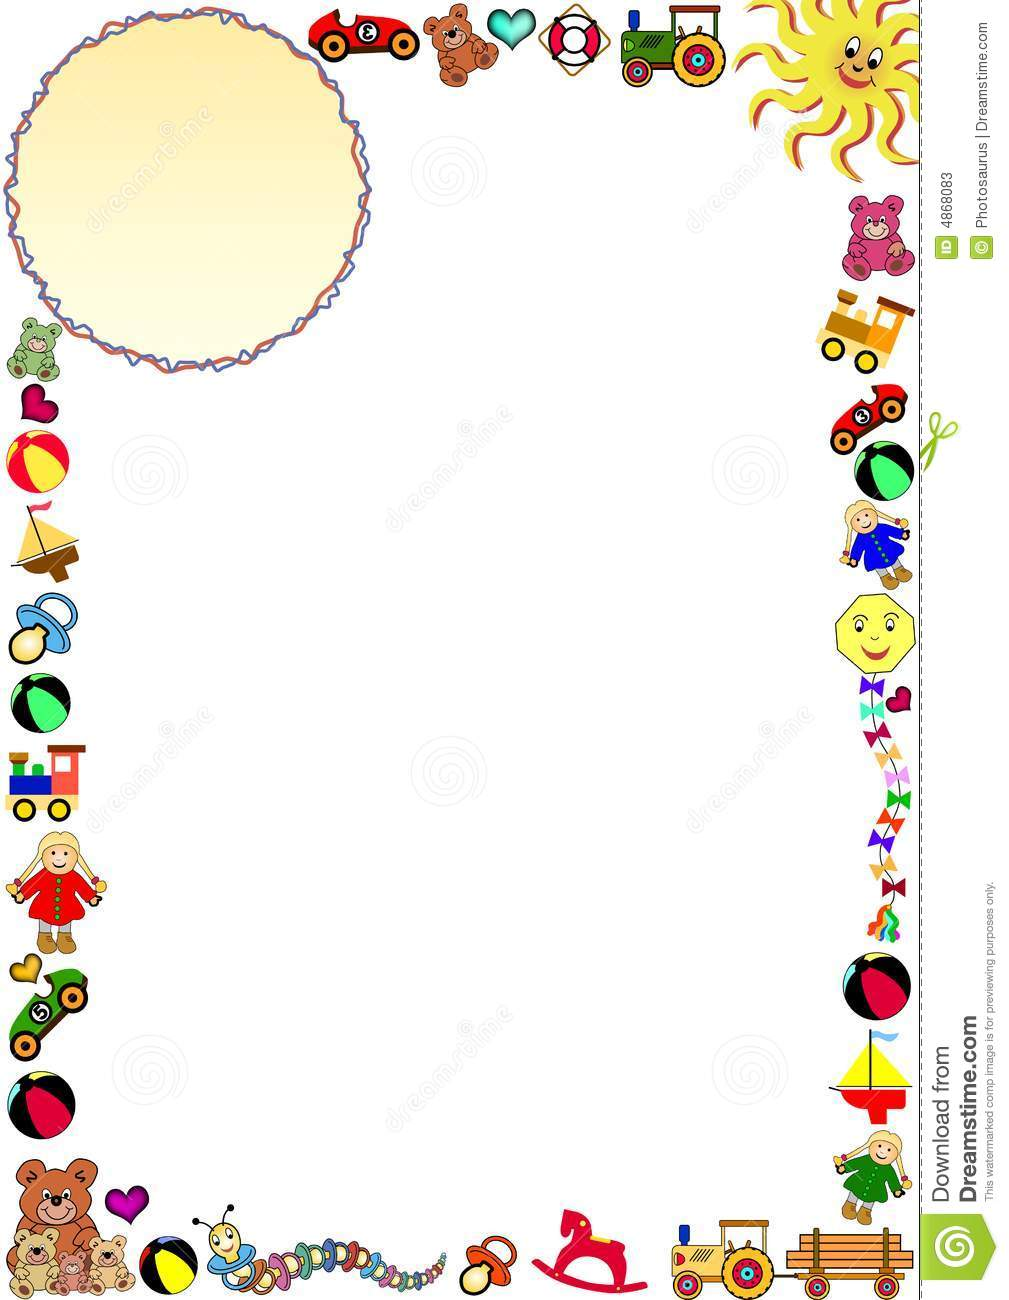 Childrens border stock vector. Illustration of family - 4868083